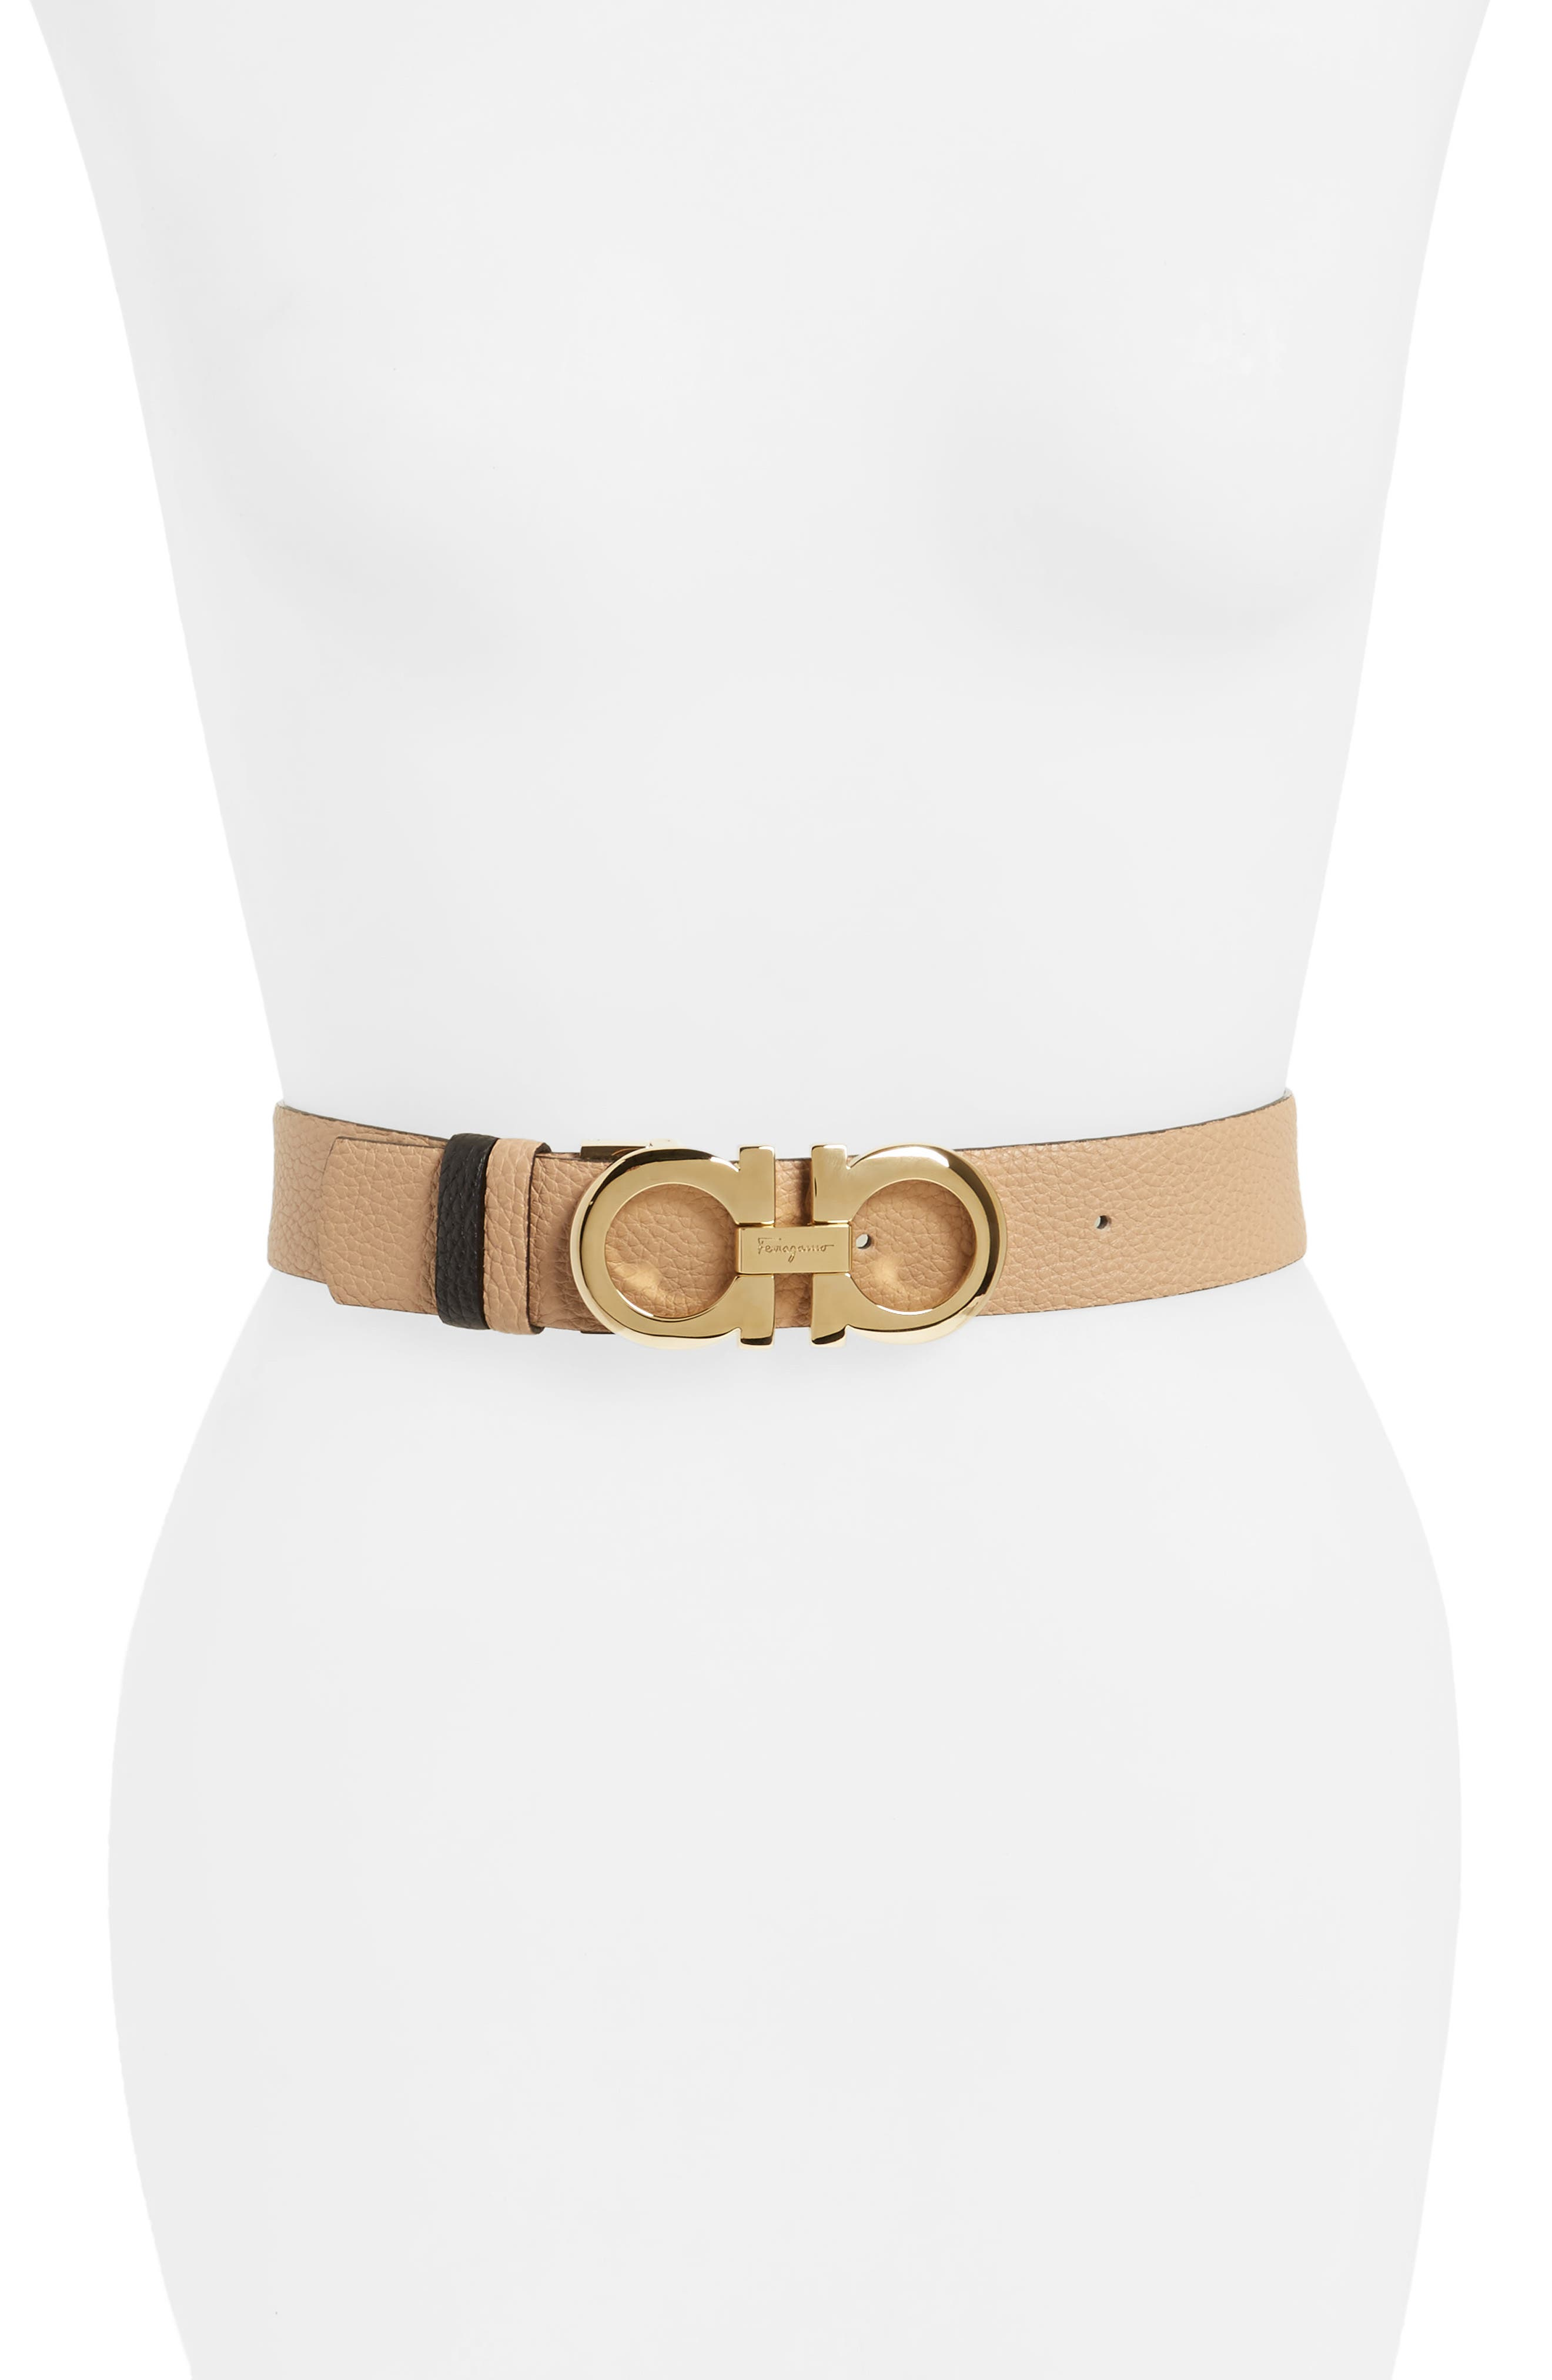 Salvatore Ferragamo Reversible Double Gancio Calfskin Leather Belt